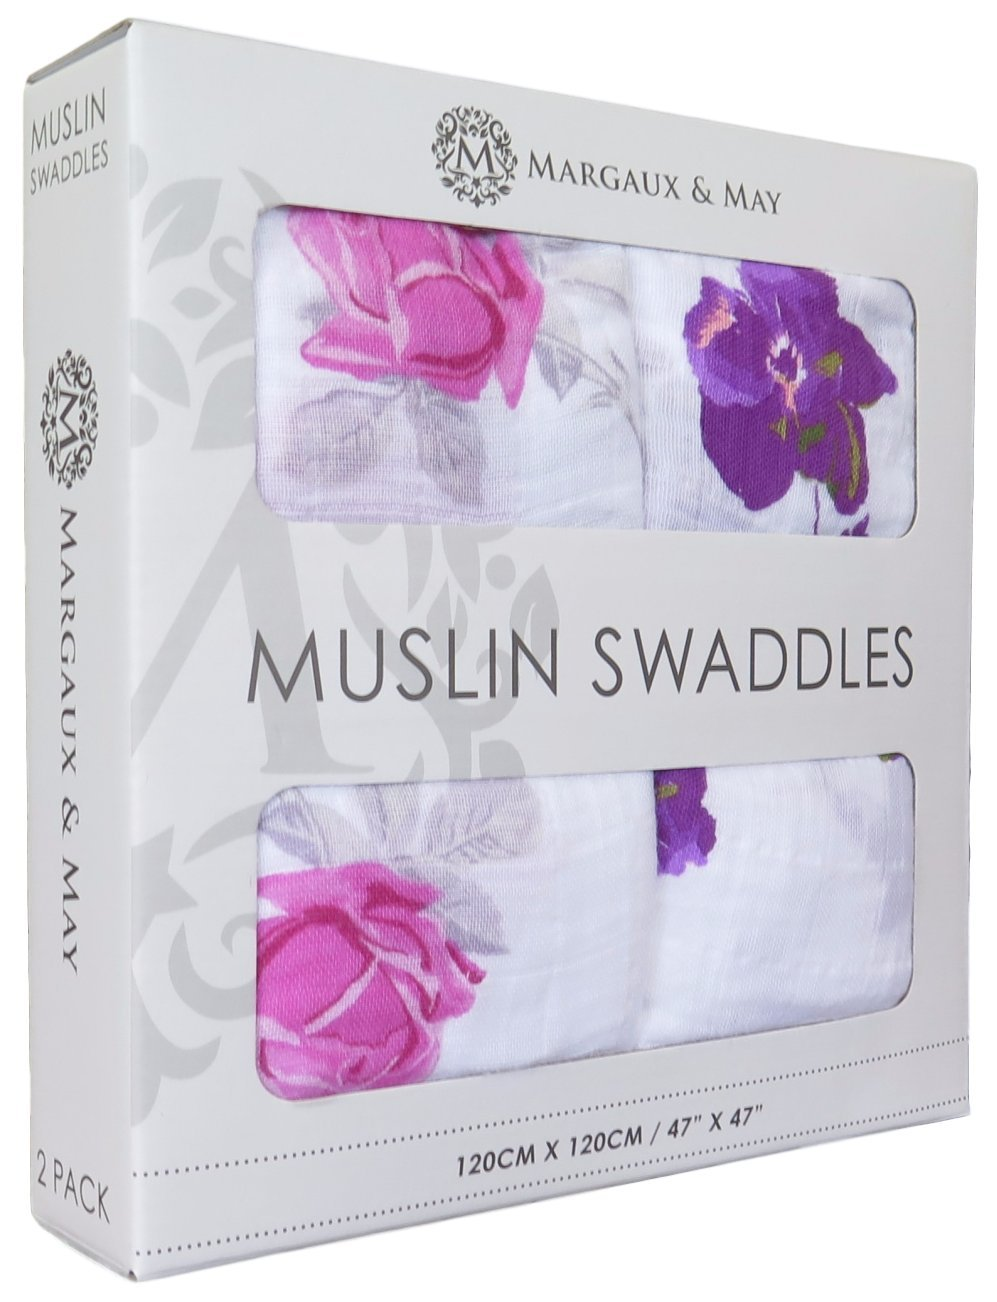 "Ultra Soft Muslin Swaddle Blankets ""Pink & Purple Flowers"" by Margaux & May - 47 x 47 inch - Perfect Baby Shower Gift"